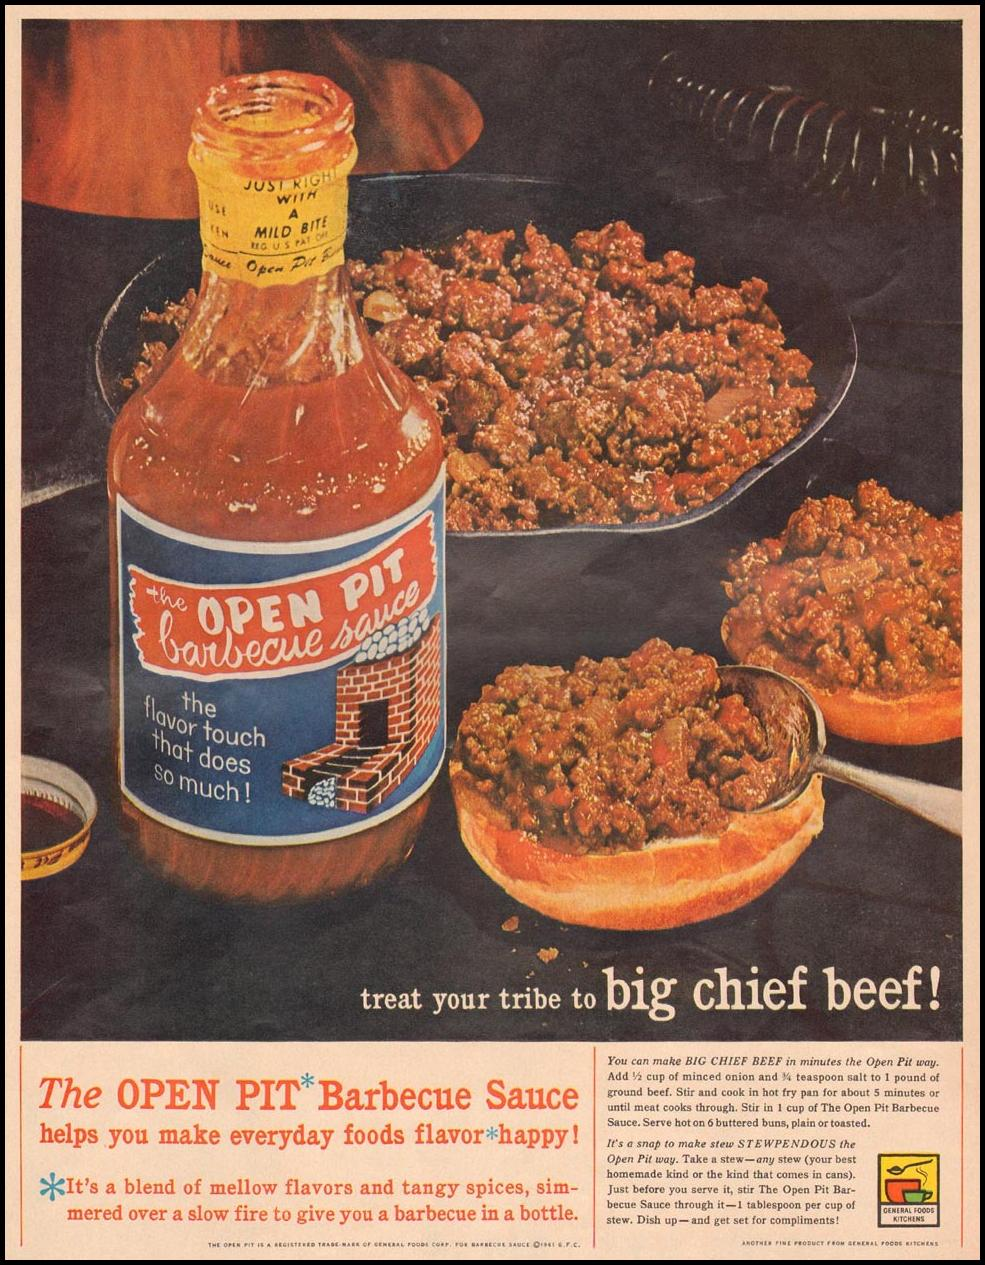 OPEN PIT BARBECUE SAUCE LIFE 03/31/1961